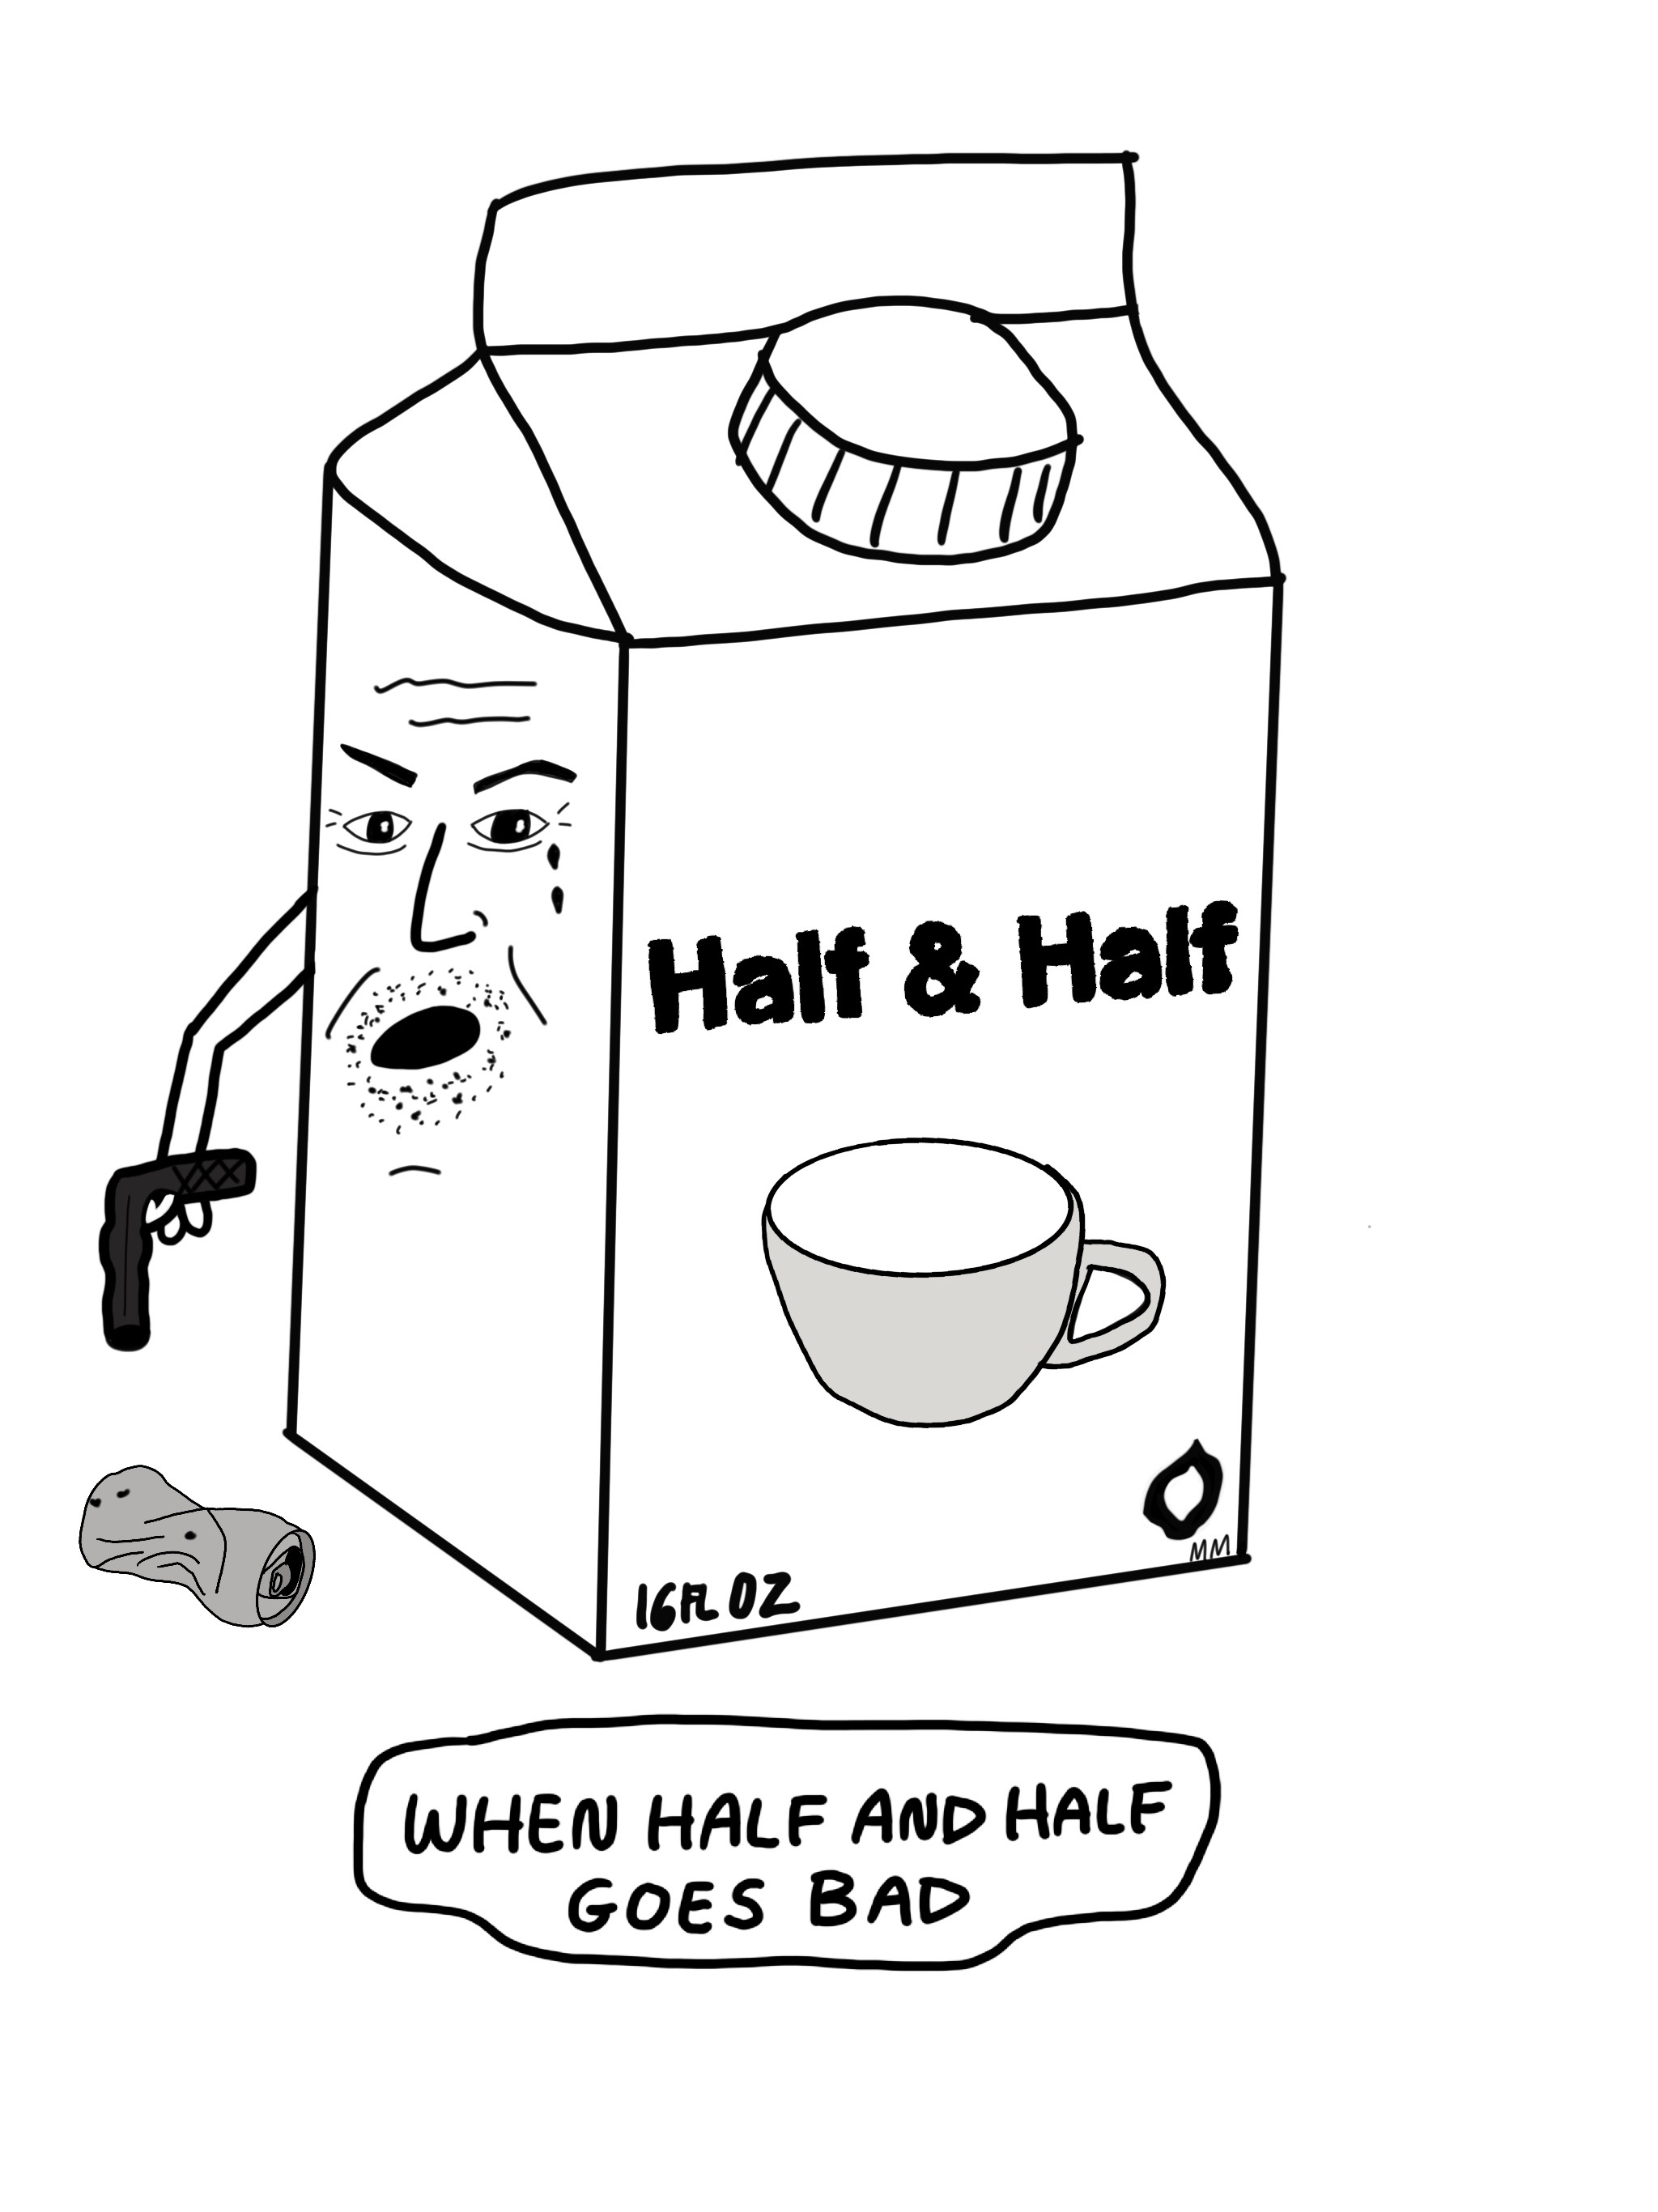 When Half & Half Goes Bad